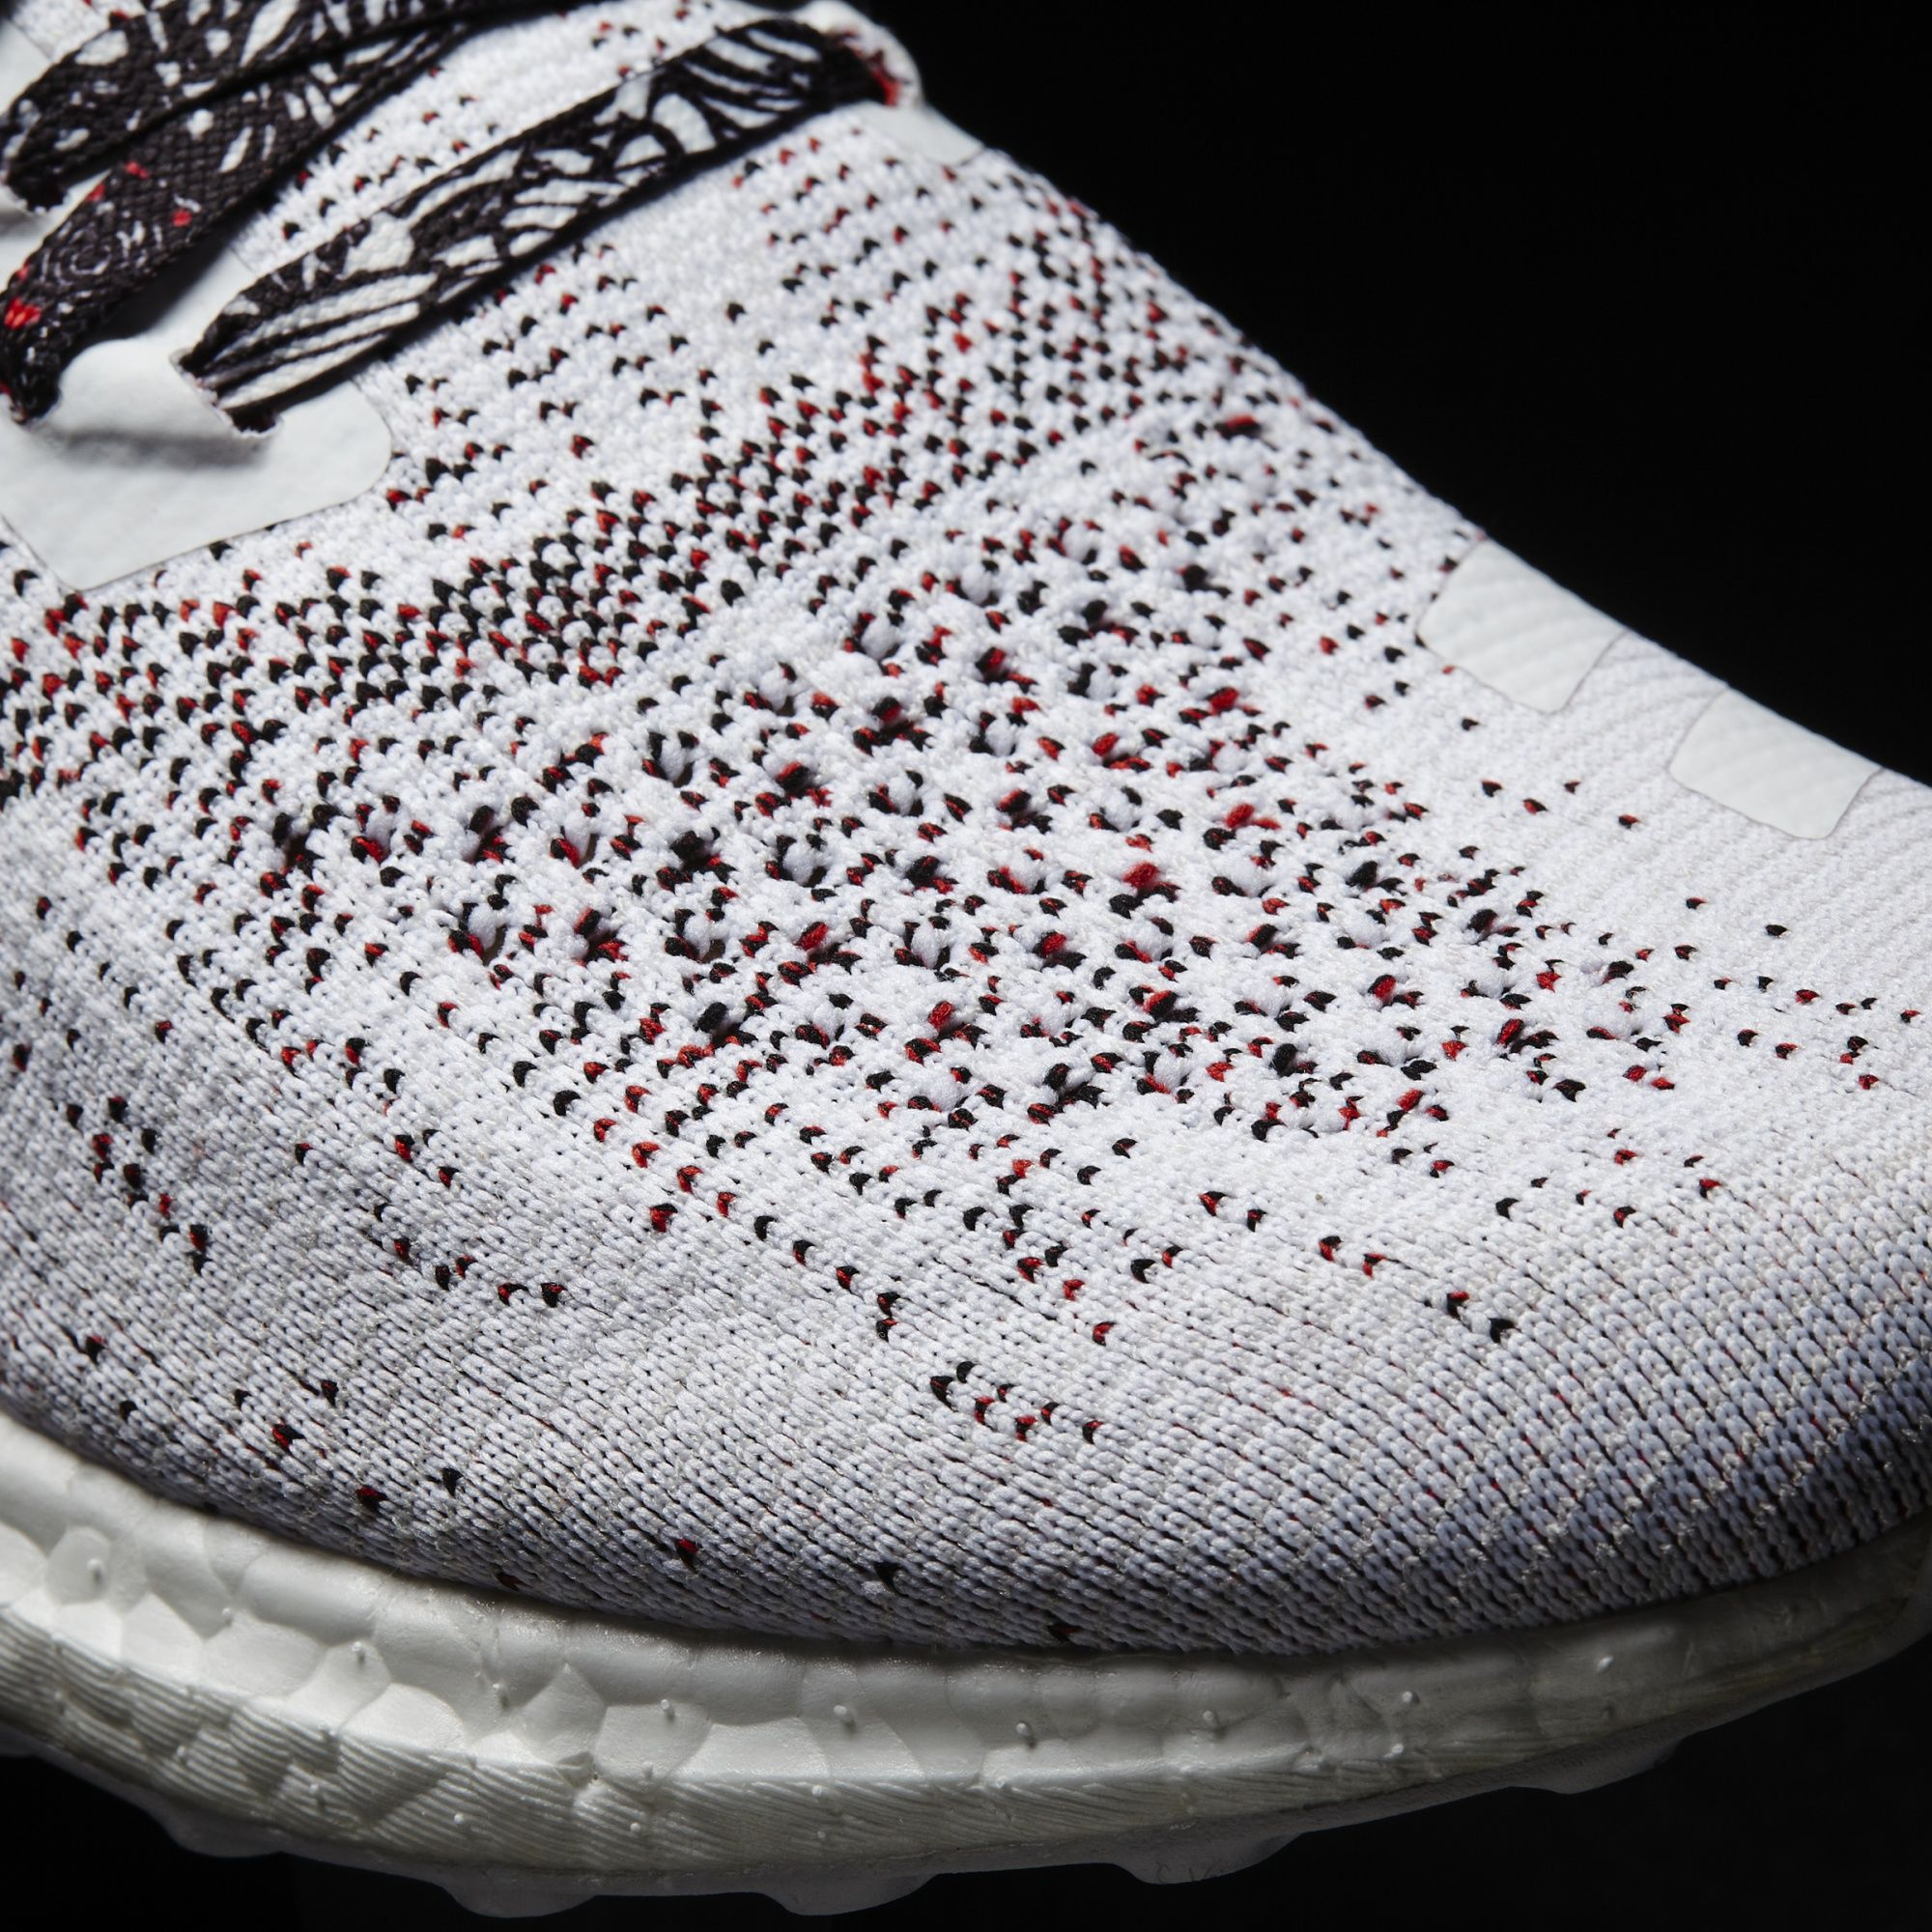 6a0ce1435 Image via Adidas Adidas Ultra Boost Uncaged Chinese New Year Toe